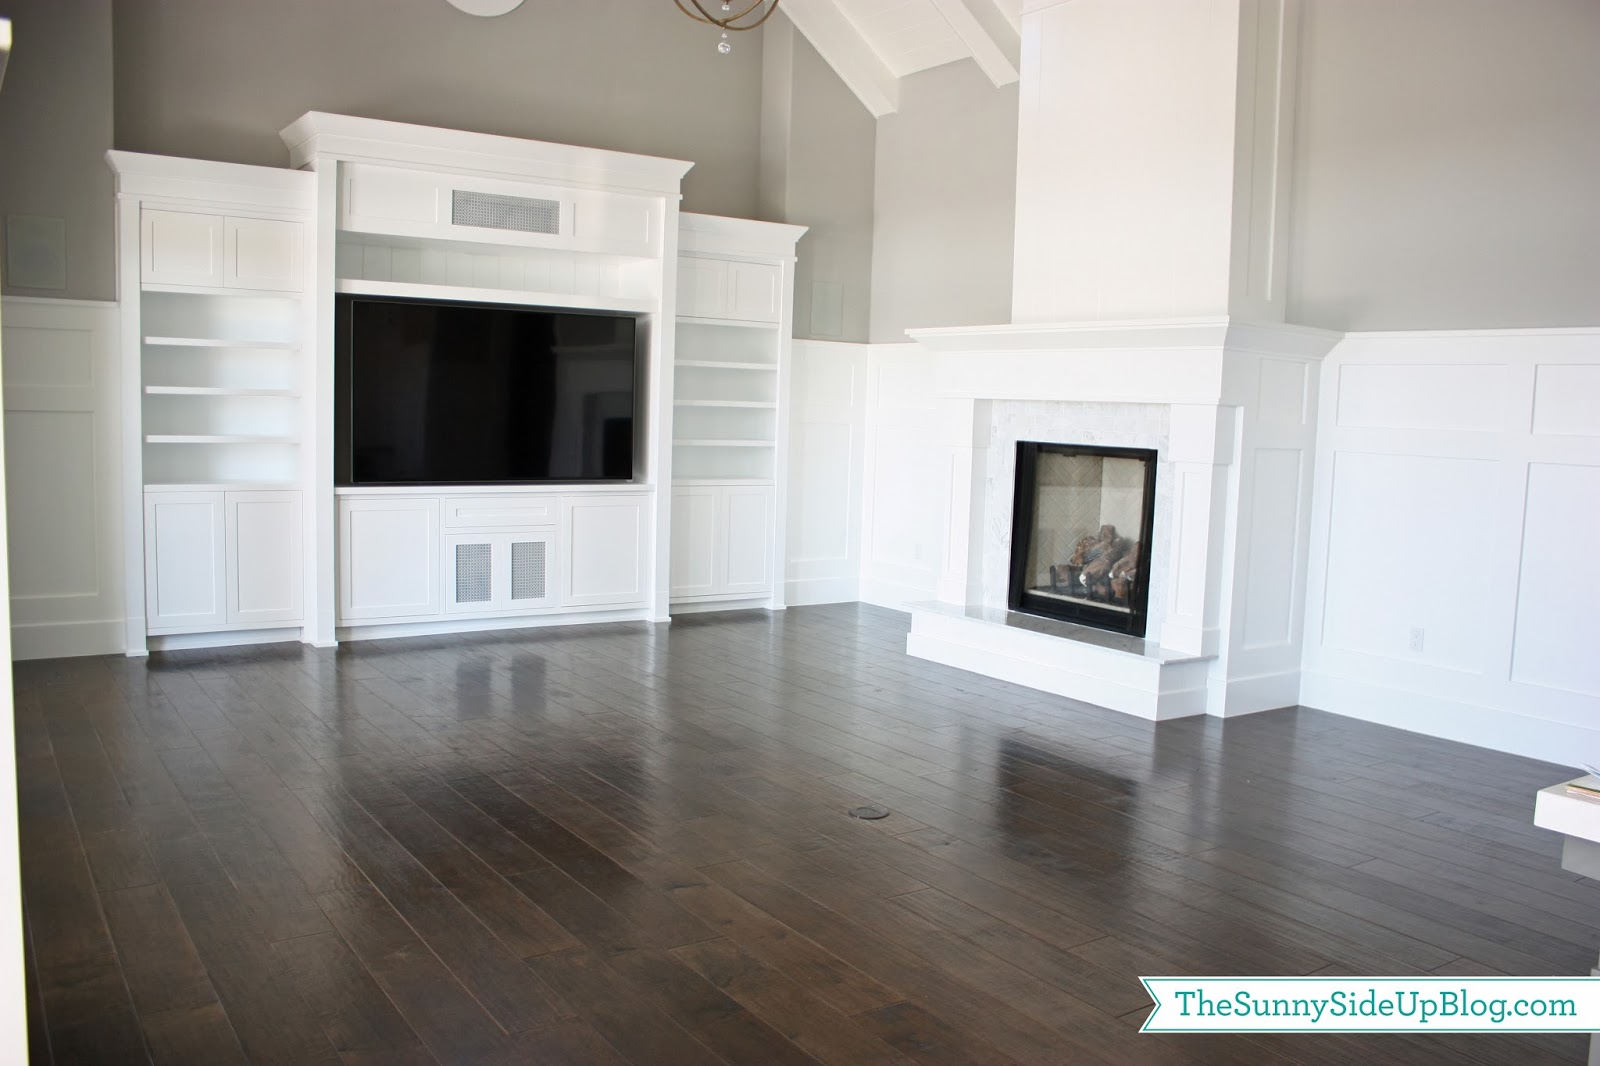 Hardwood flooring the sunny side up blog Paint colors that go with grey flooring